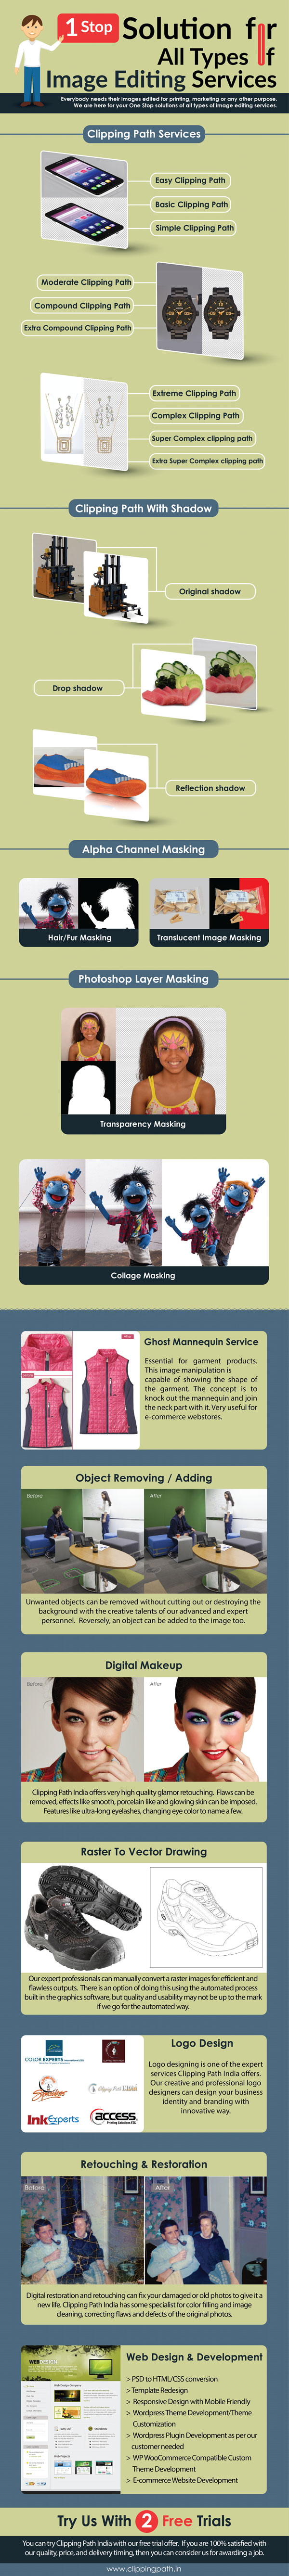 Clipping-Path-India-Photo-Editing-Solution-Infographics